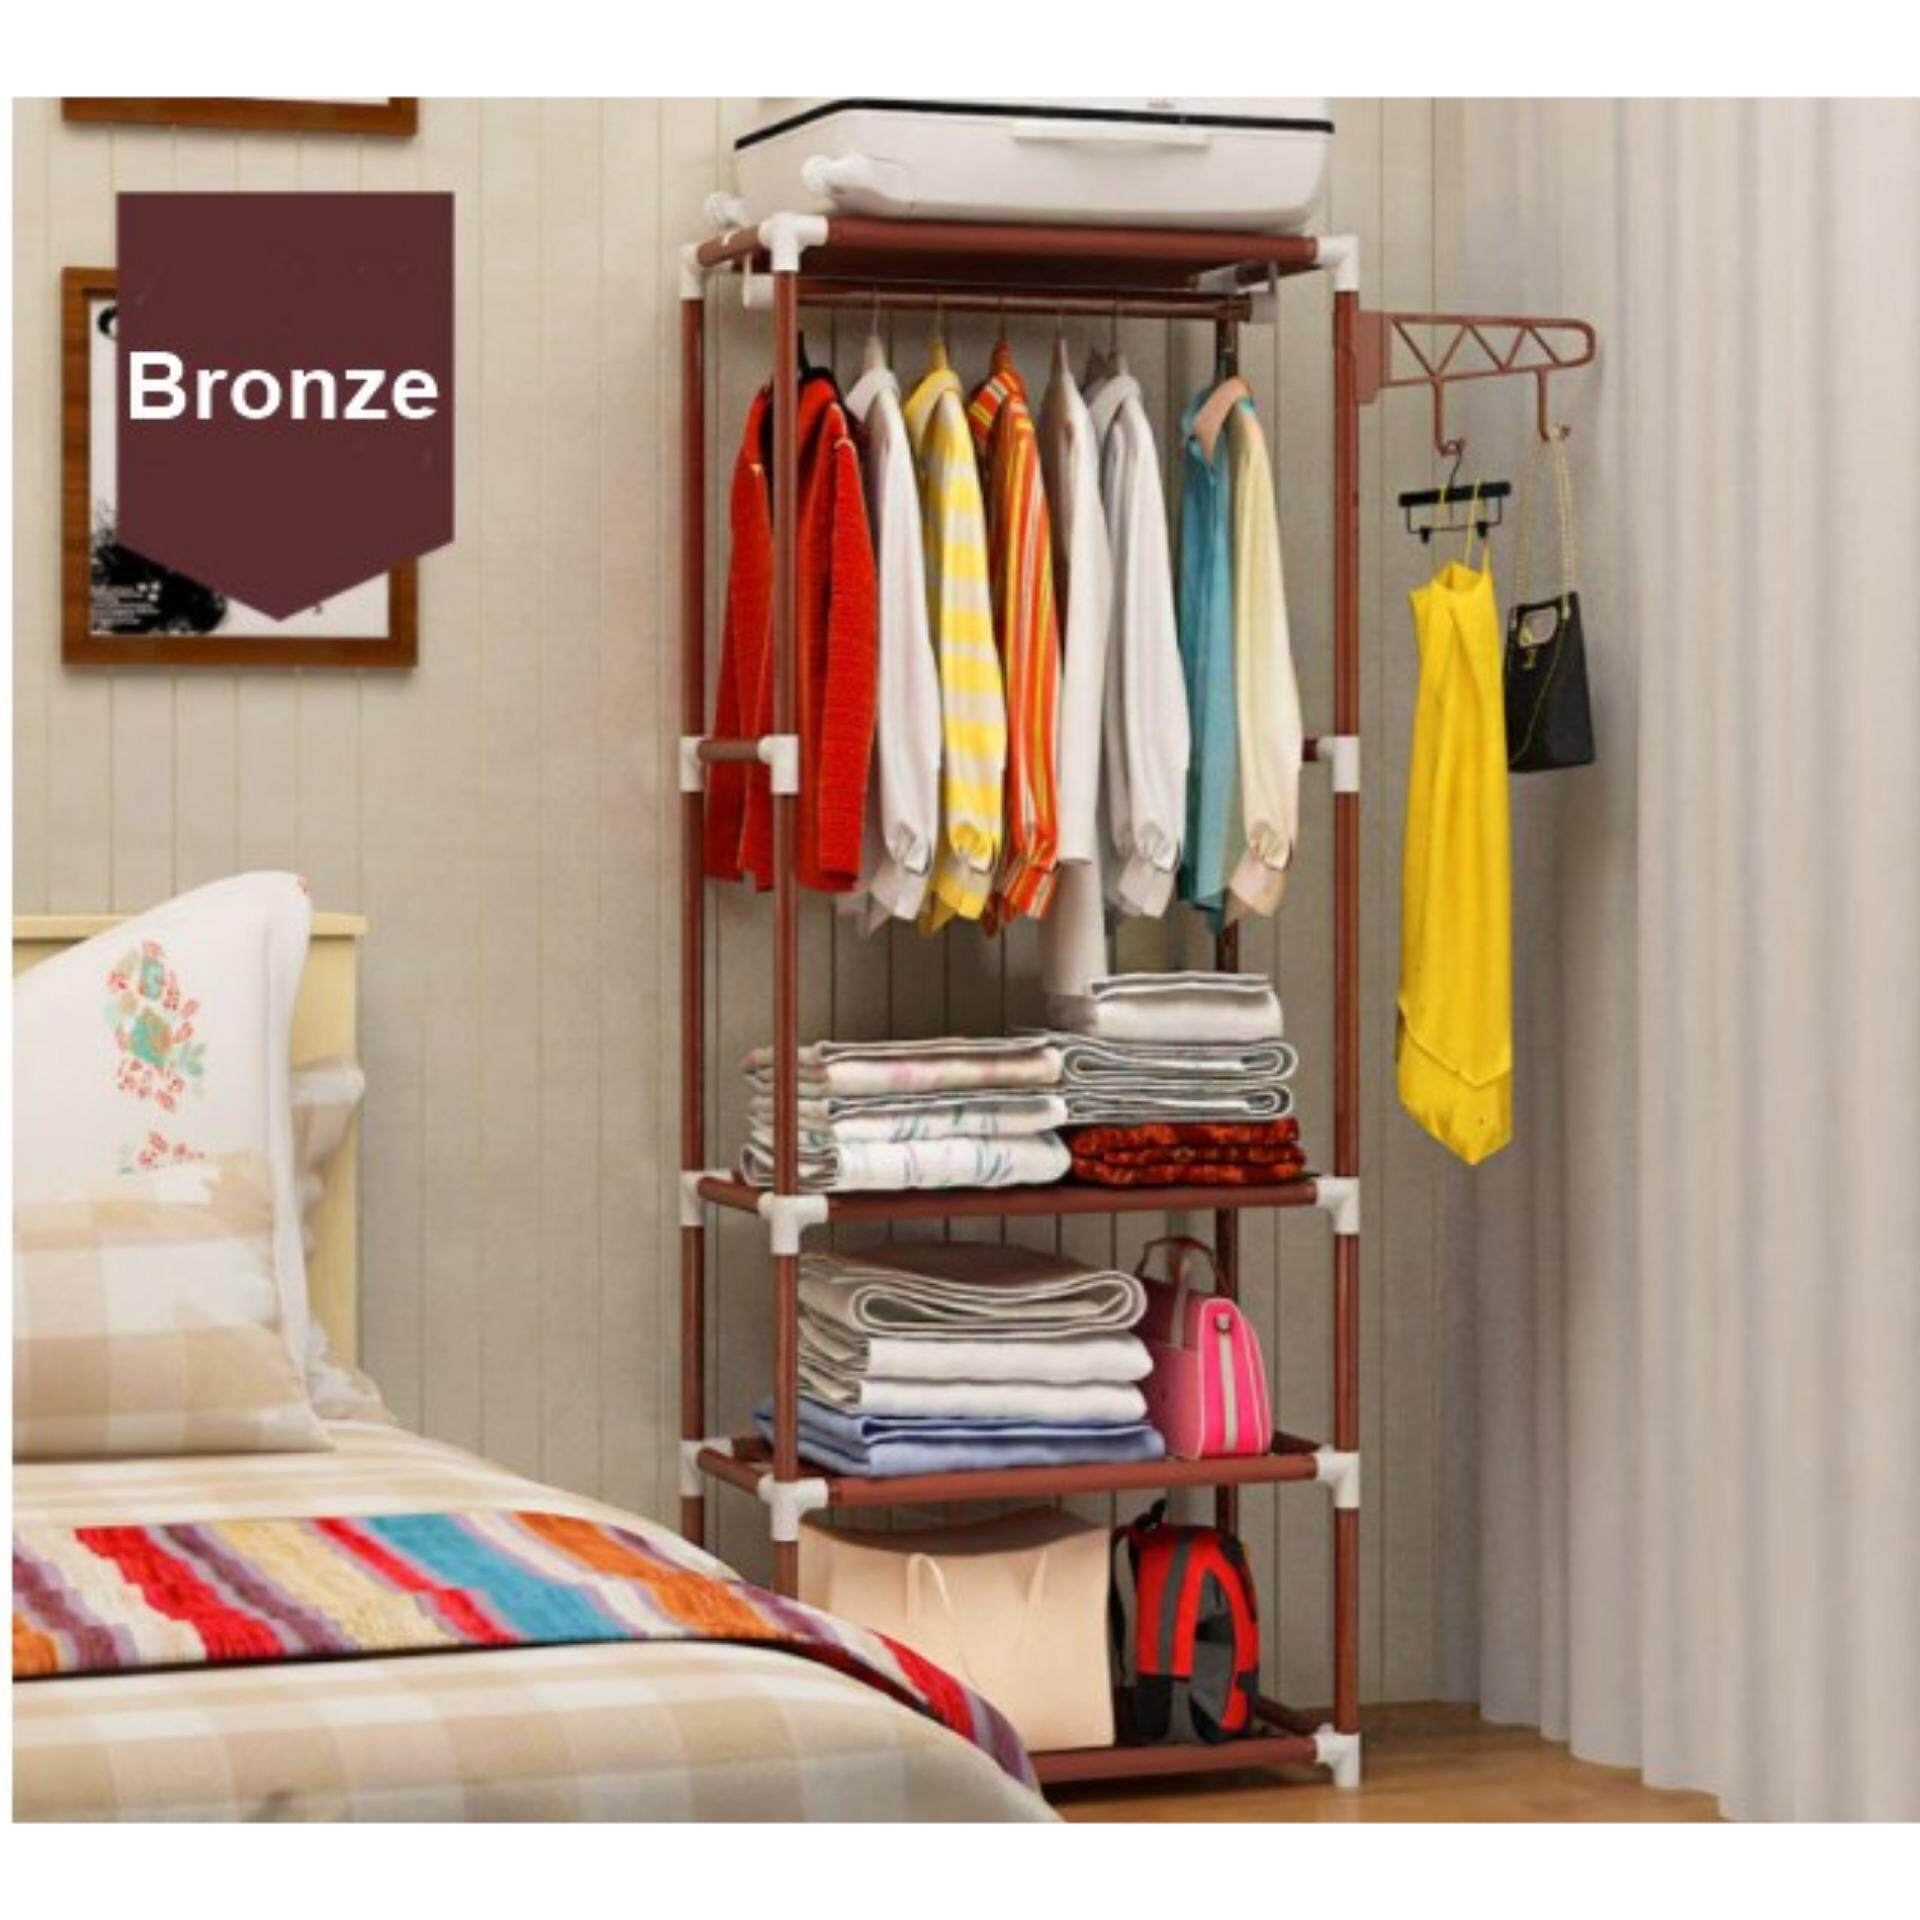 Multi function Simple Wardrobe Clothes Organizer & Storage Rack / Open Closet